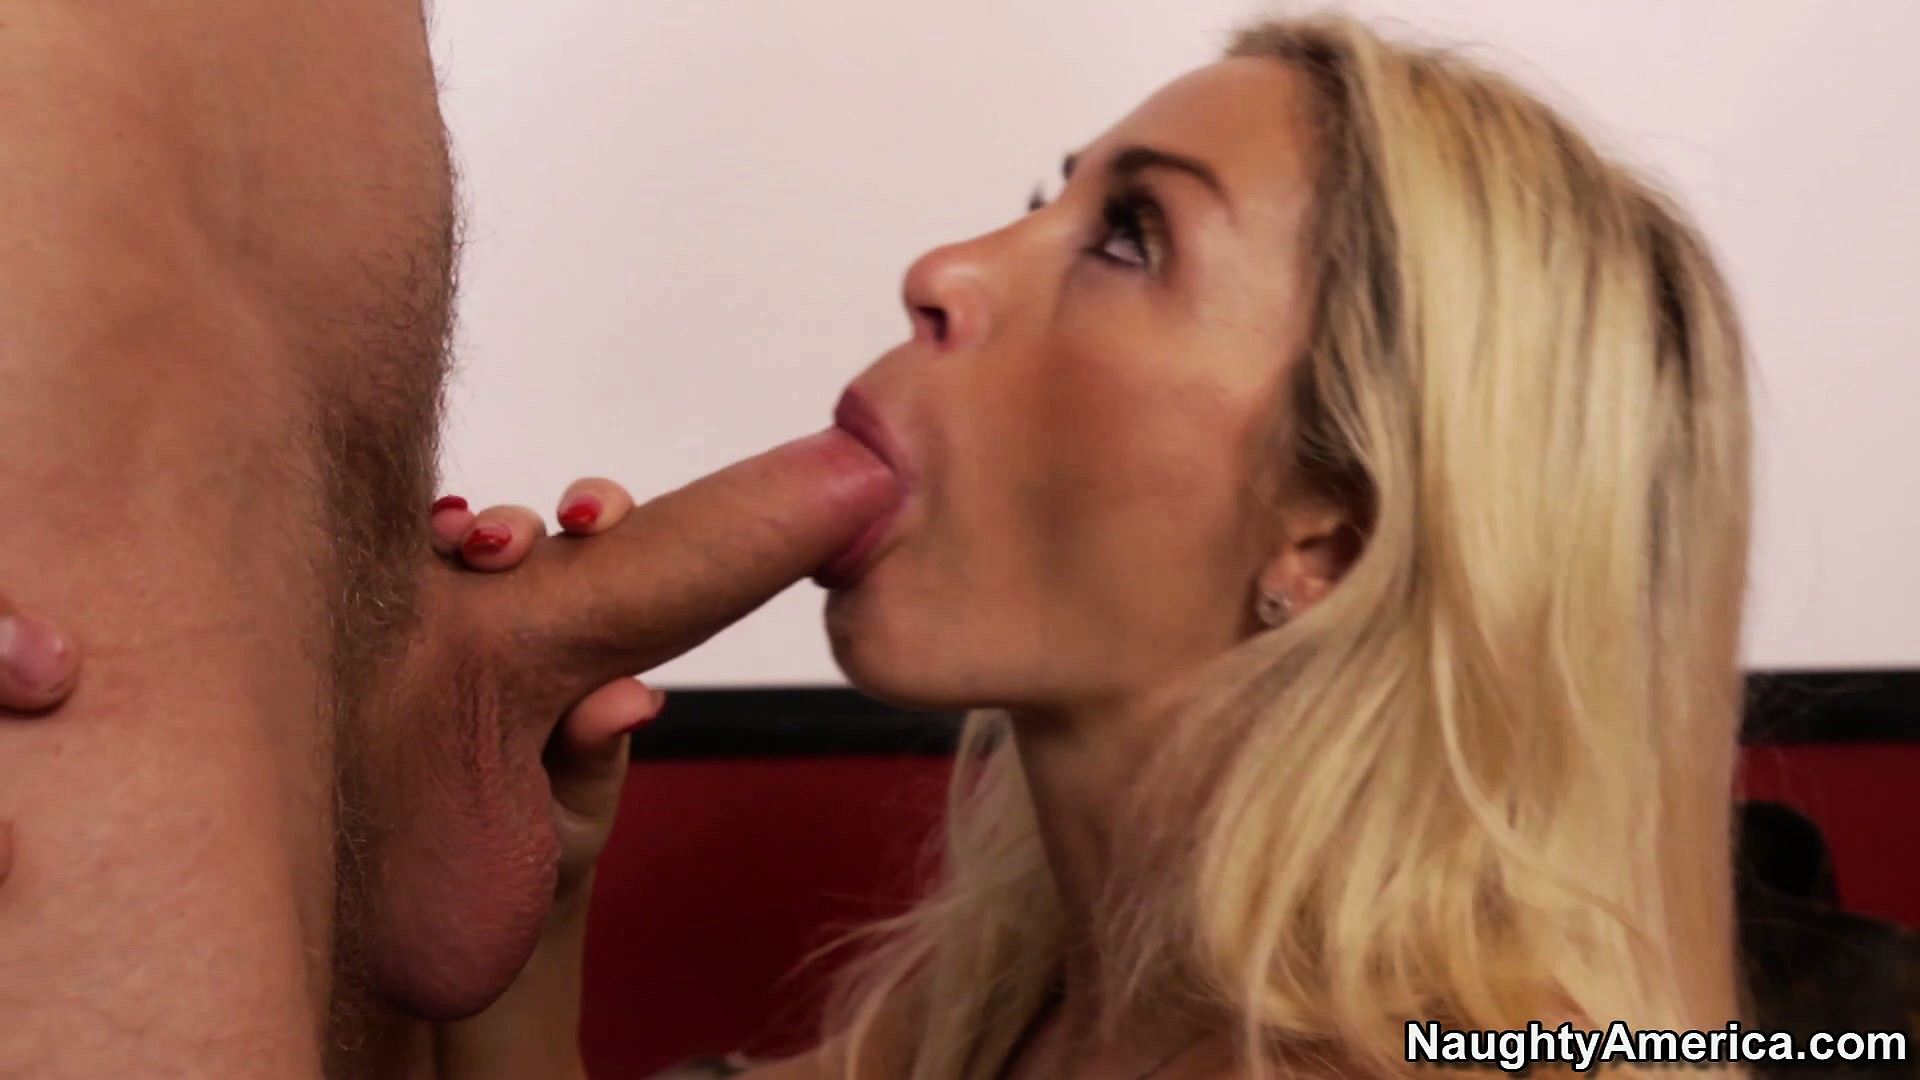 Porno Video of Dazzling Blonde Milf Evita Pozzi Shows Off Her Curvy Body And Her Blowjob Skills